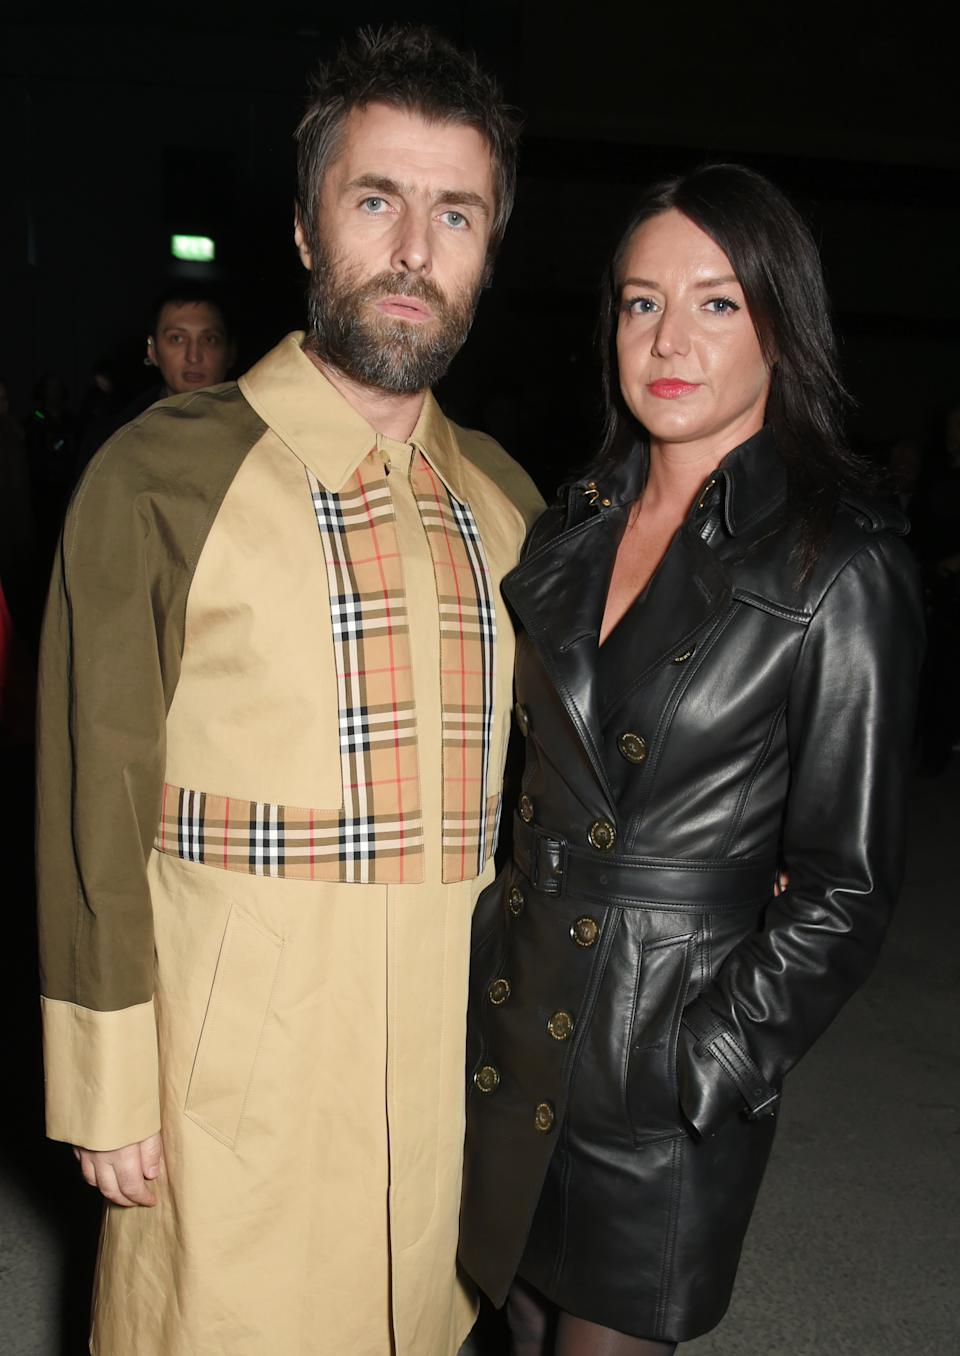 Liam Gallagher (L) and Debbie Gwyther wearing Burberry at the Burberry February 2018 show during London Fashion Week at Dimco Buildings on February 17, 2018 in London, England.  (Photo by David M. Benett/Dave Benett/Getty Images for Burberry)